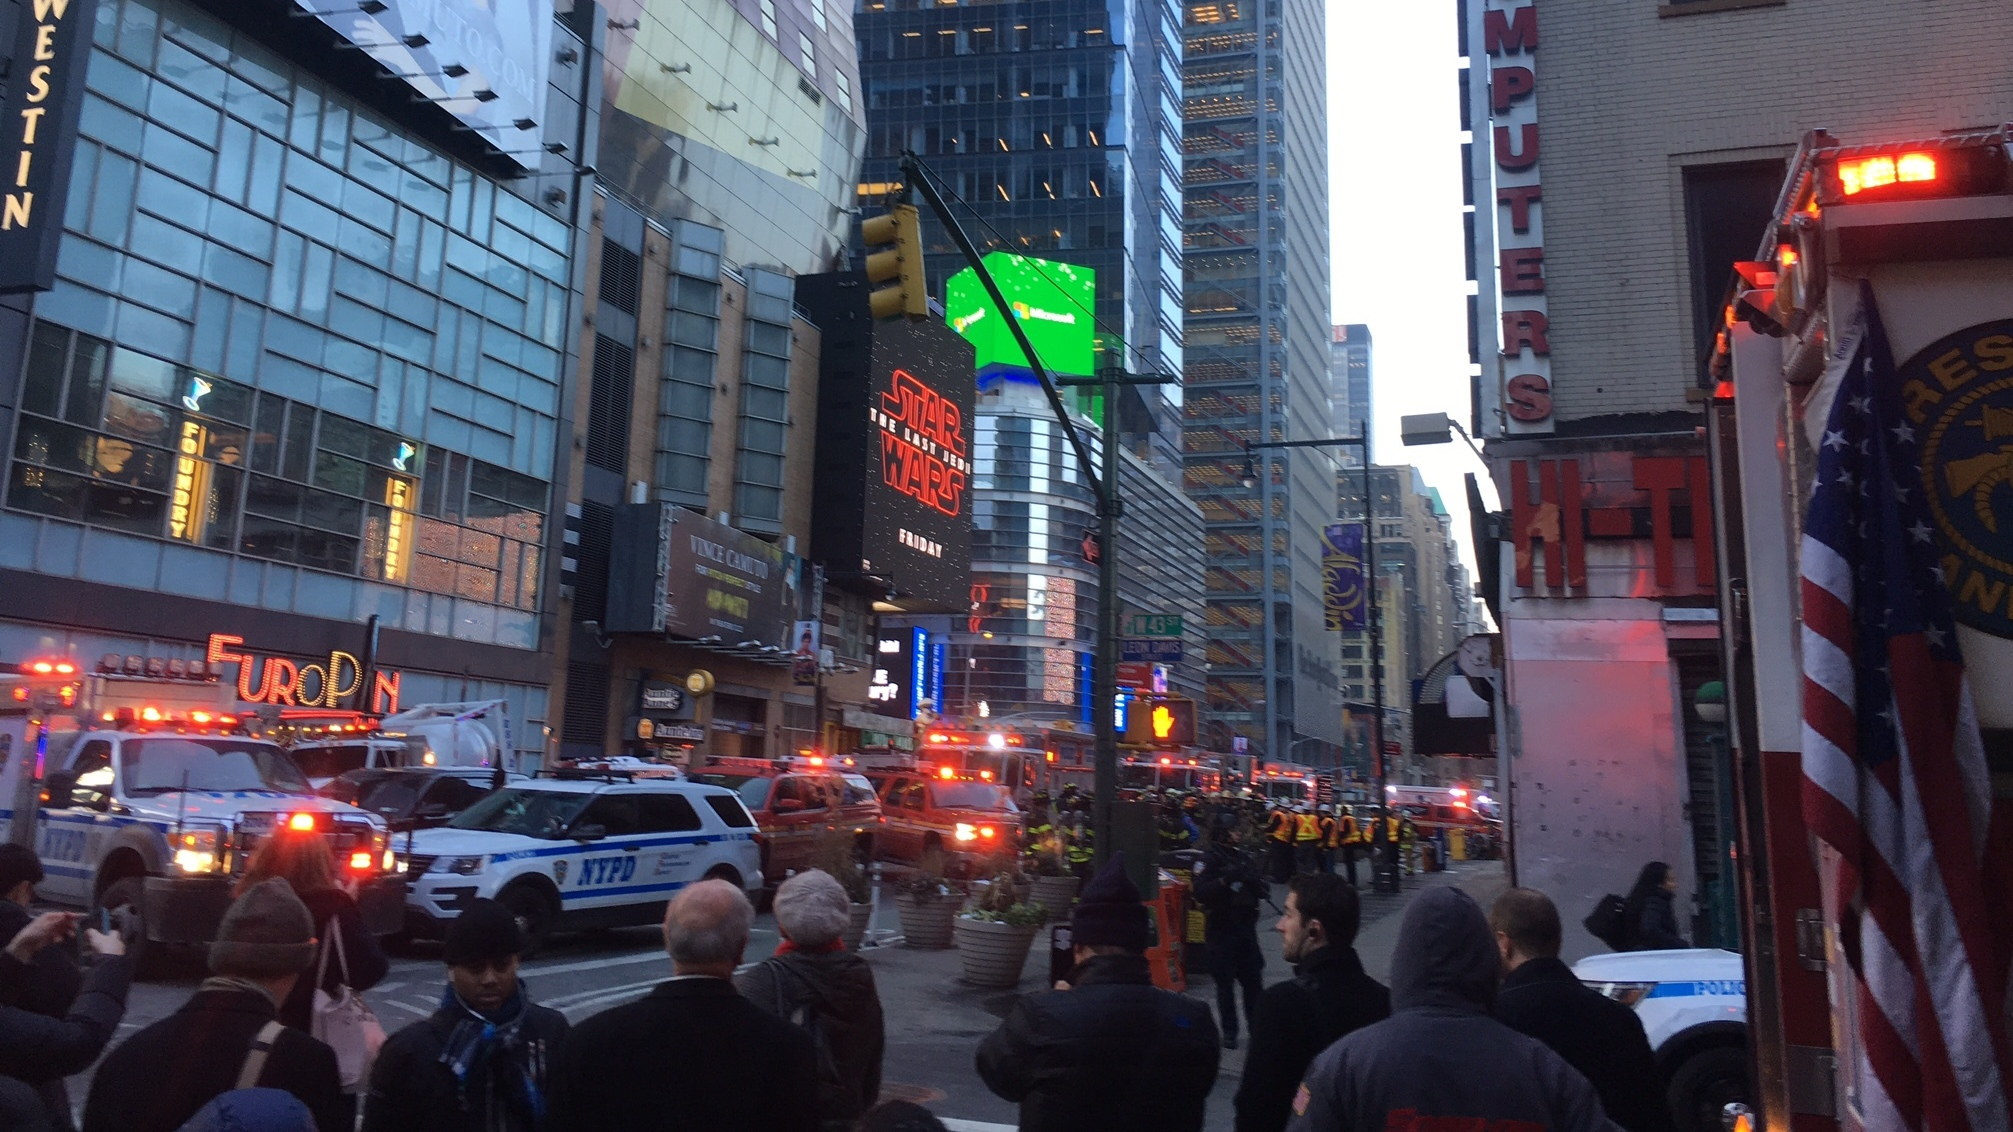 Explosive Device Detonated Near Times Square in